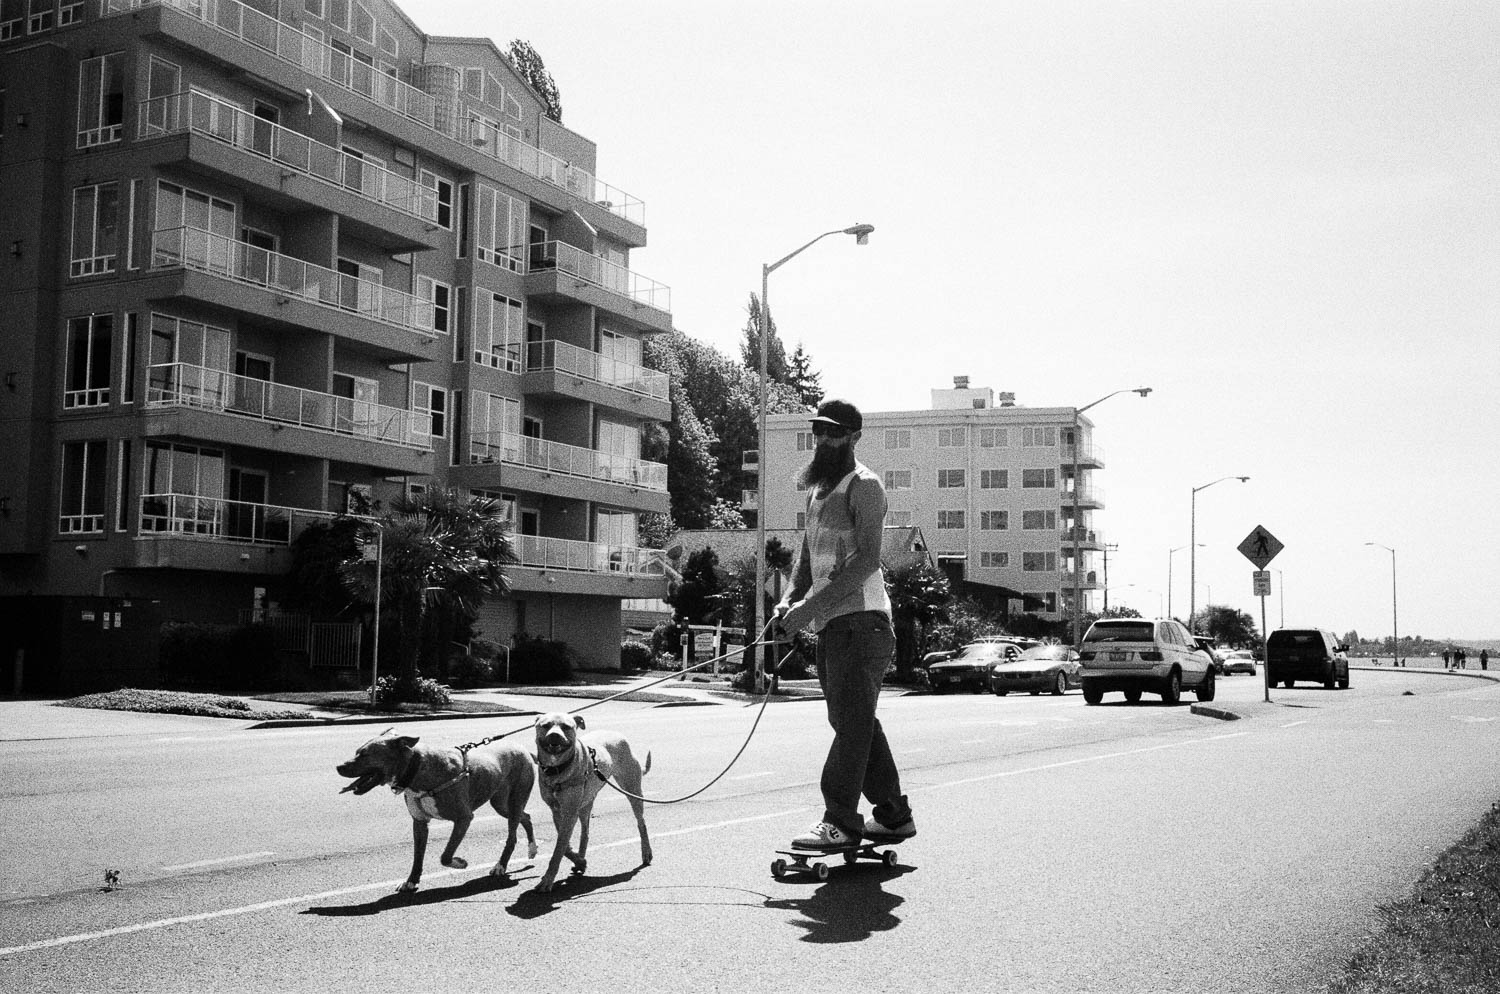 A bearded man on a skateboard being pulled by two dogs